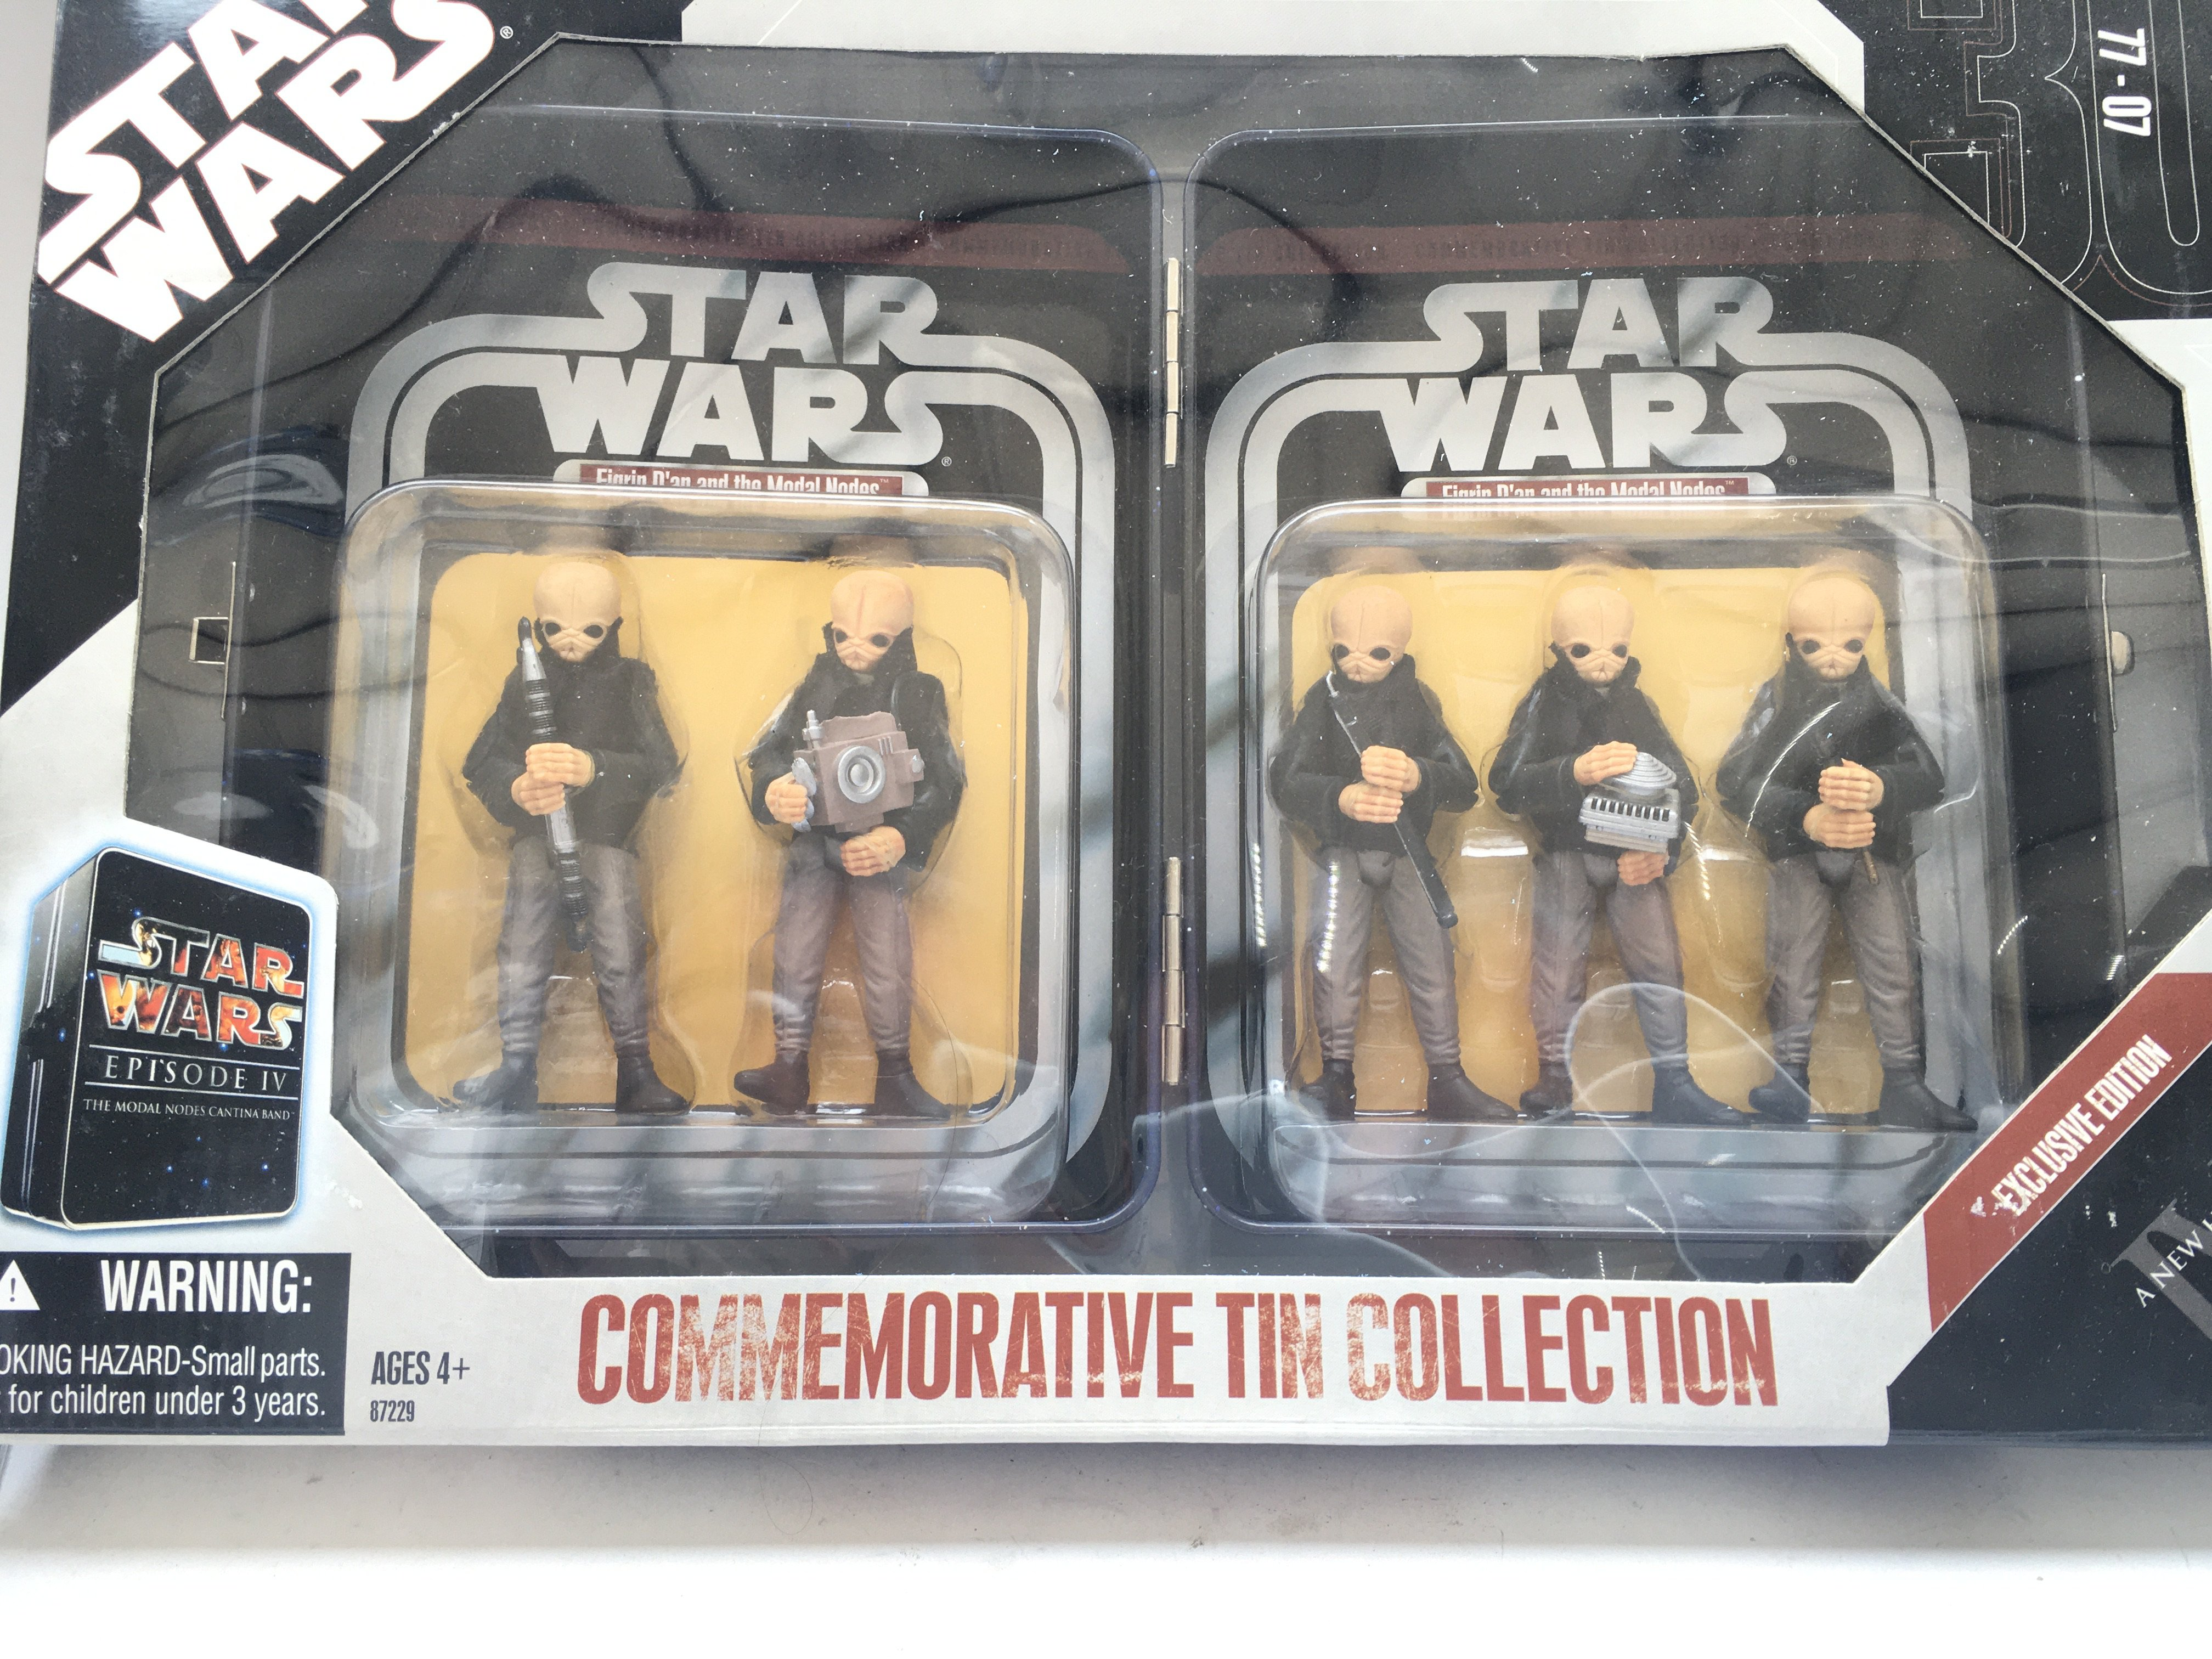 A Star Wars Commemorative Tin Collection Episode I - Image 3 of 4